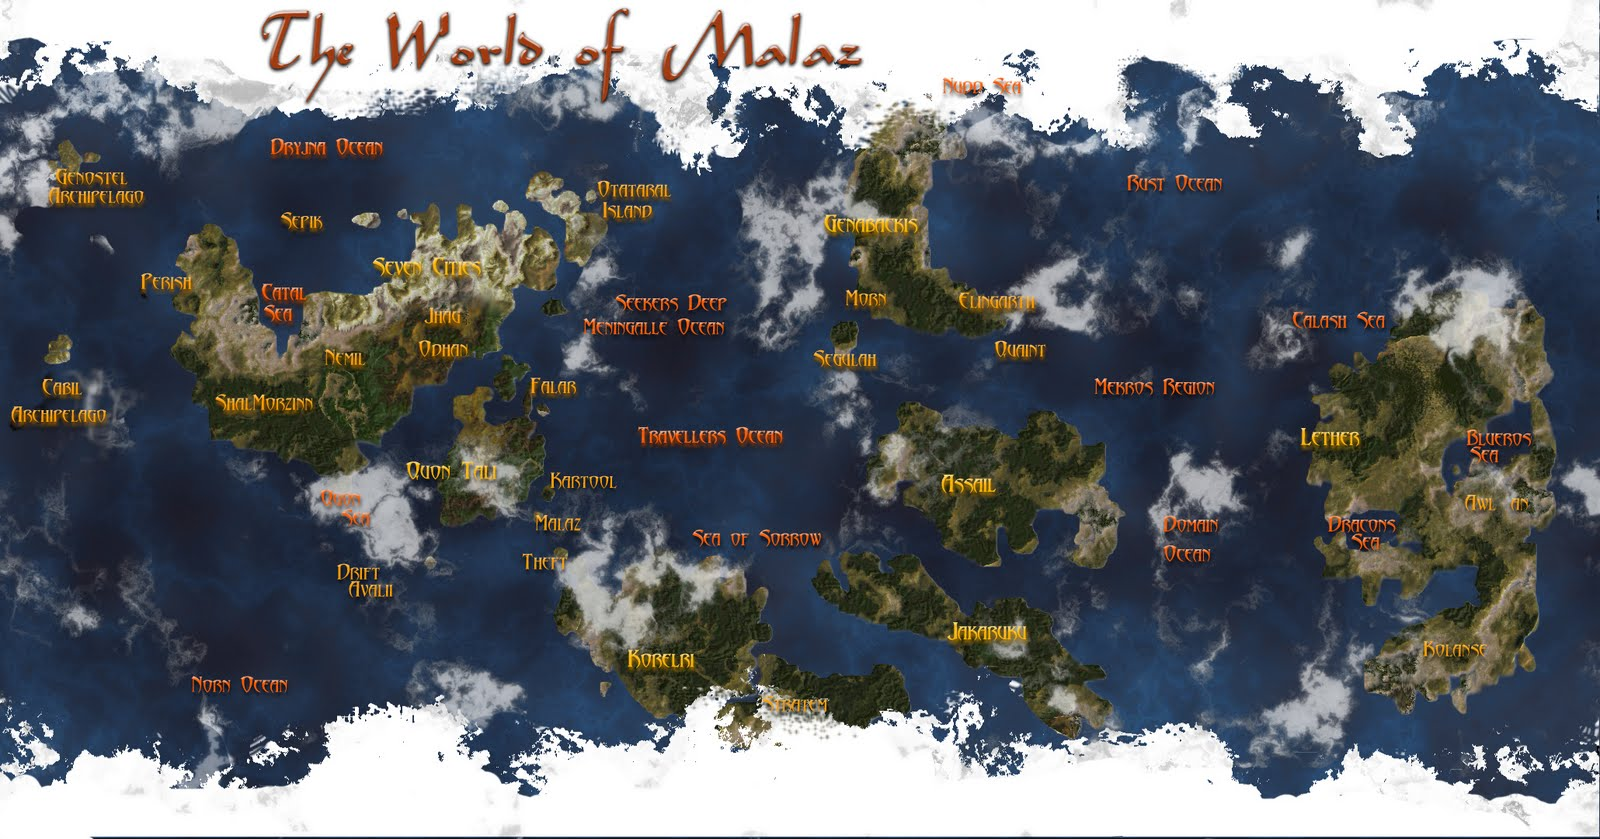 133 Best Images About Malazan On Pinterest  Hedges, Deviantart Fantasy And  Memories